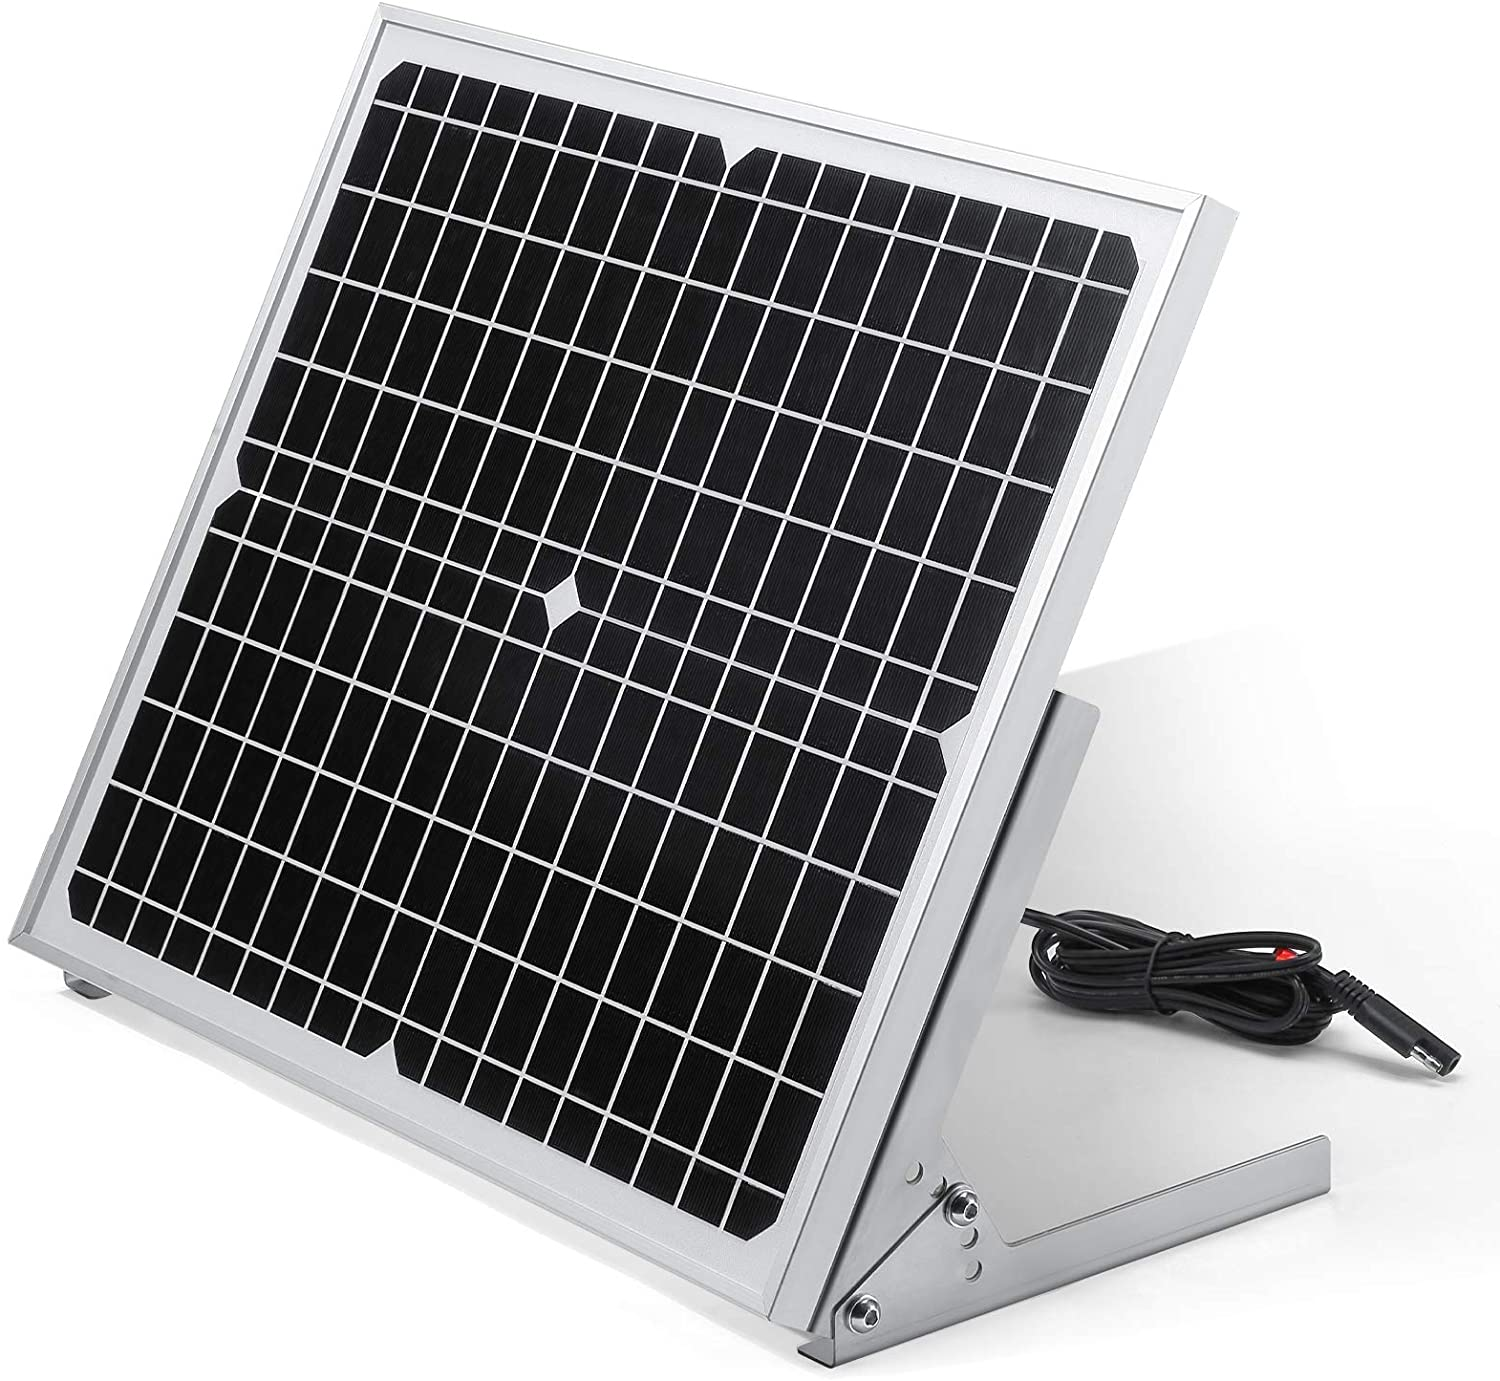 12v 20w Solar Panel Battery Charger Kit for Gate Opener, with Built-in MPPT Control Module